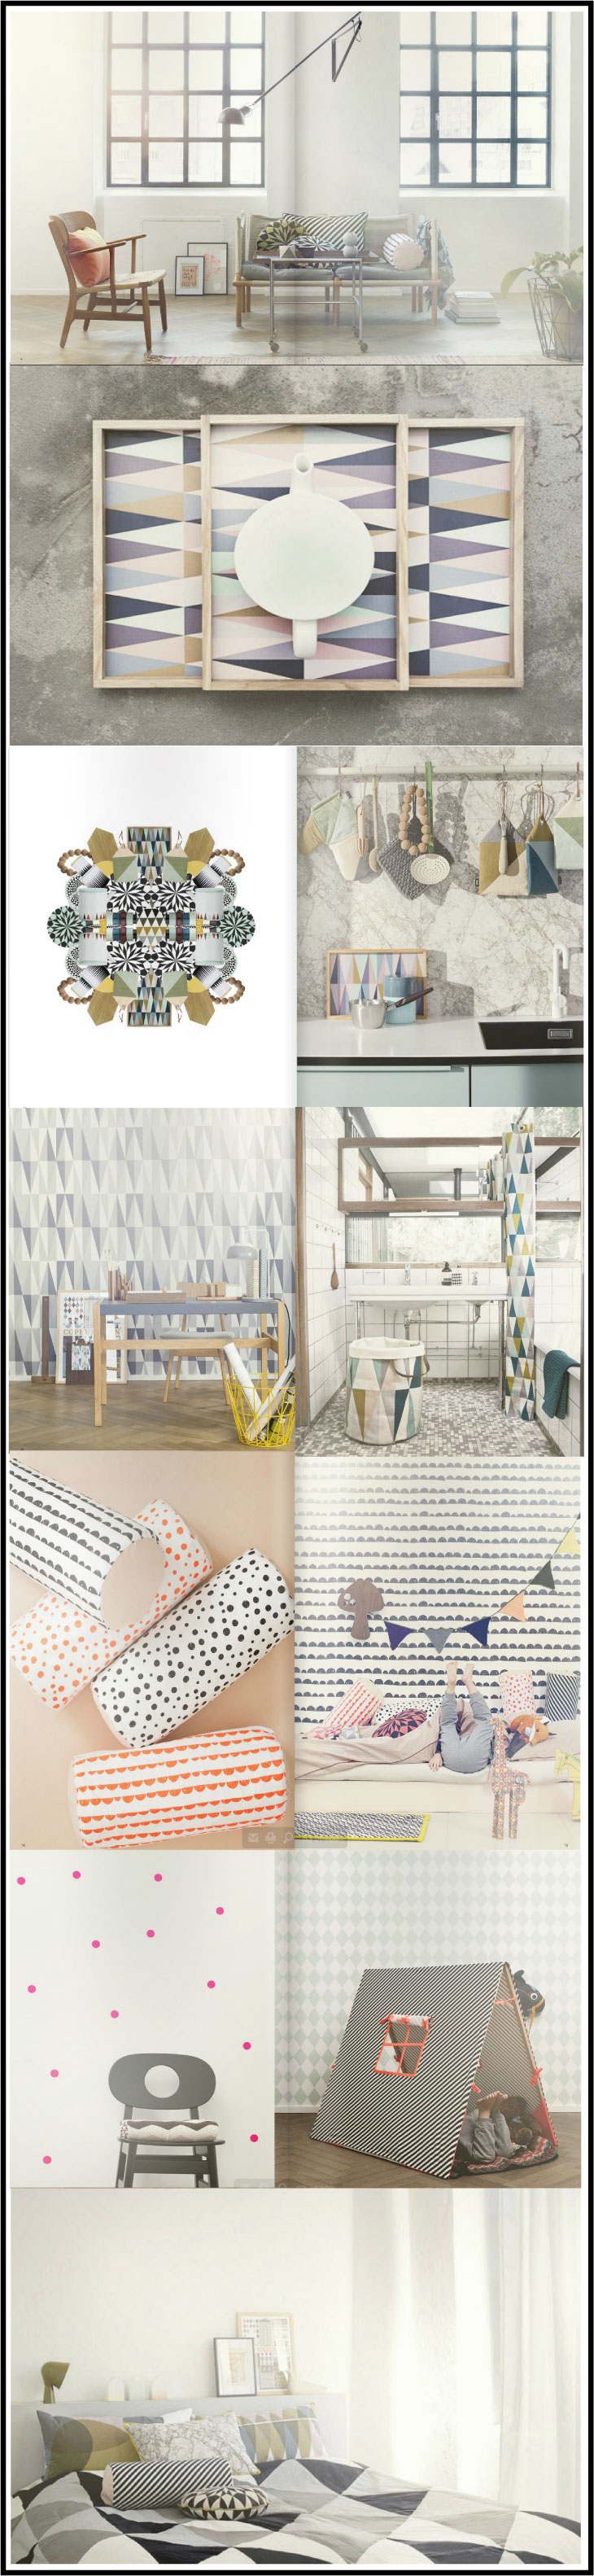 ferm-living-collection-2013 par chiara stella home